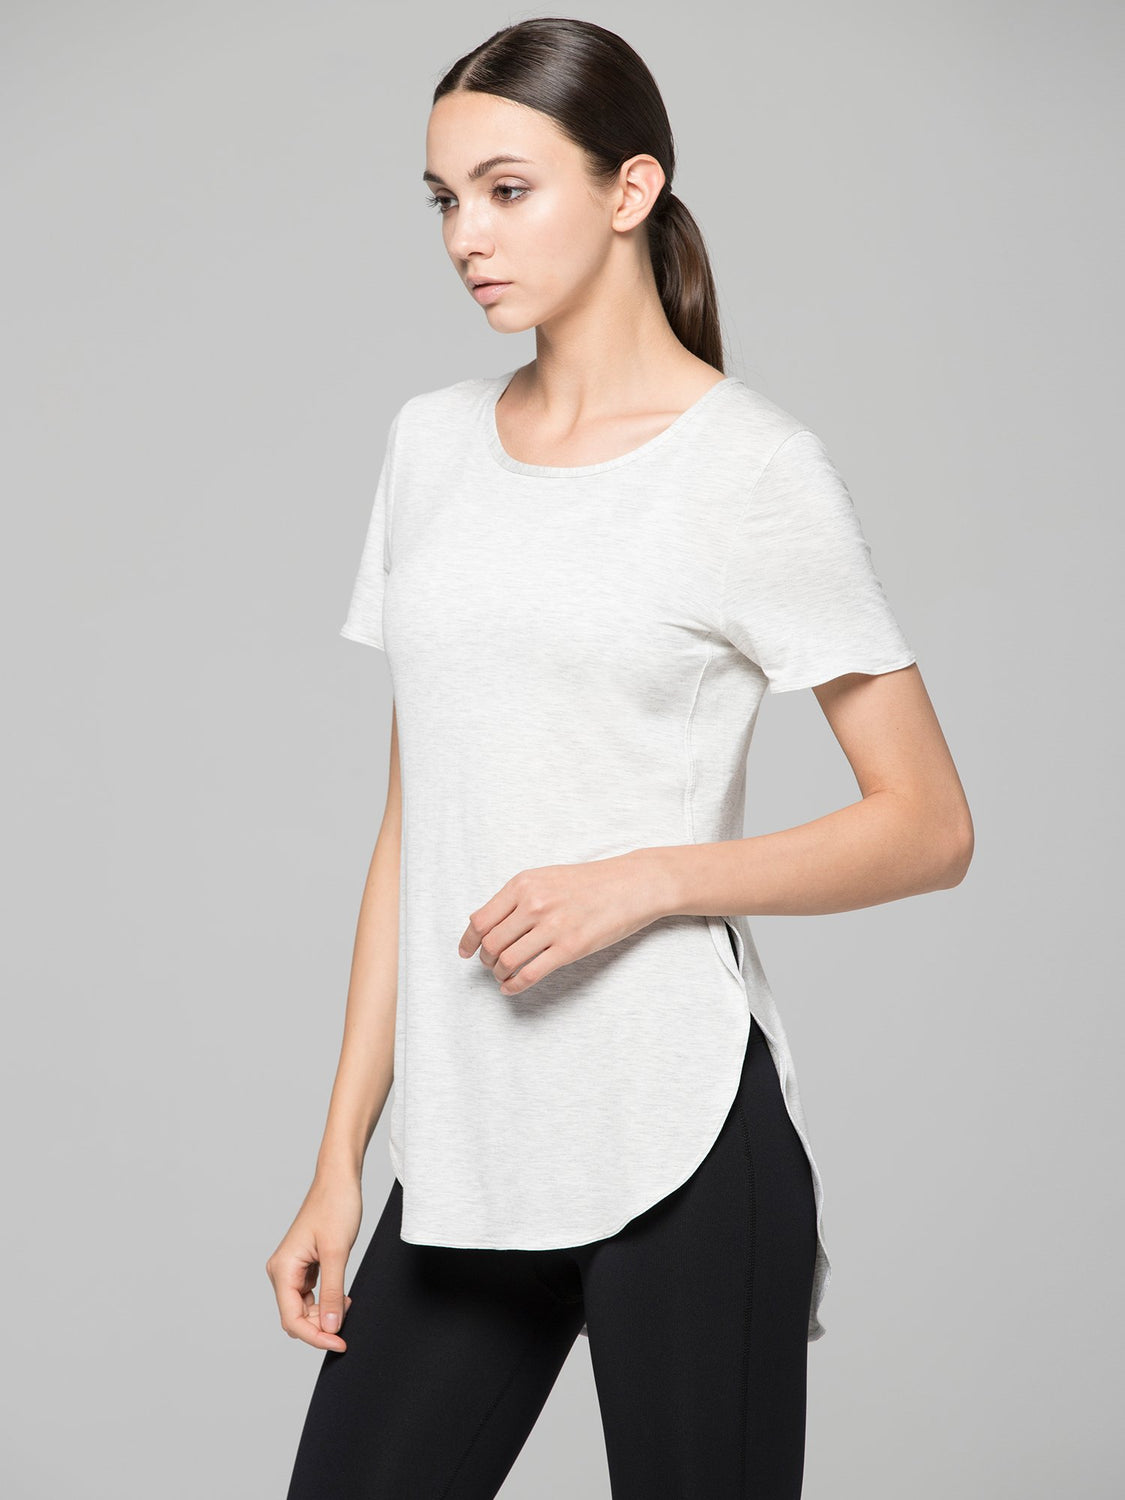 HI LO SPLIT SIDE TEE, LIGHT HEATHER GREY